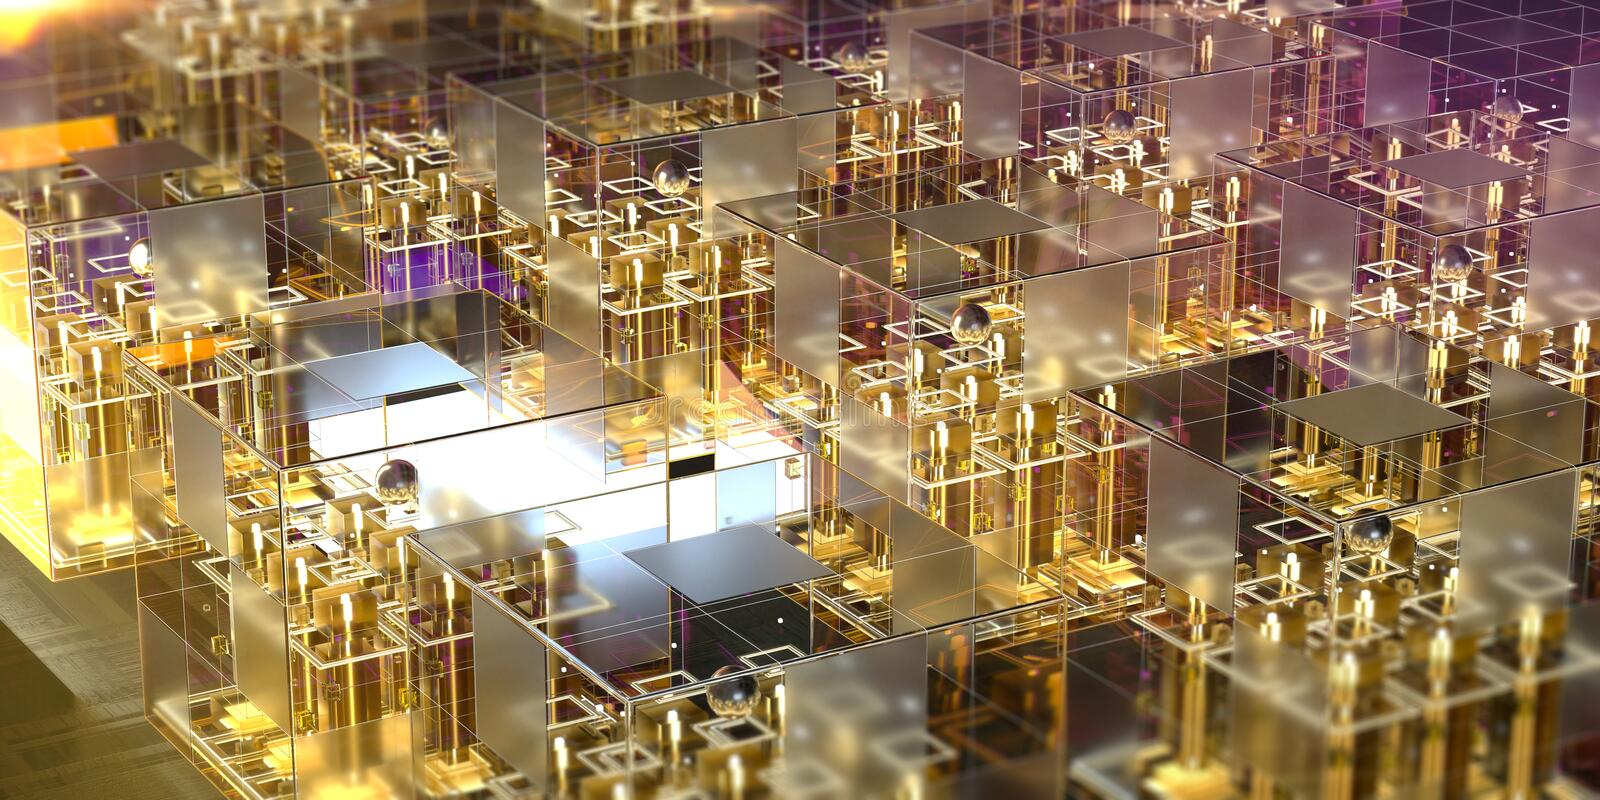 Glass block with glowing micro chips in them and abstract structures. New techologiesneural networks 3d rendering stock illustration